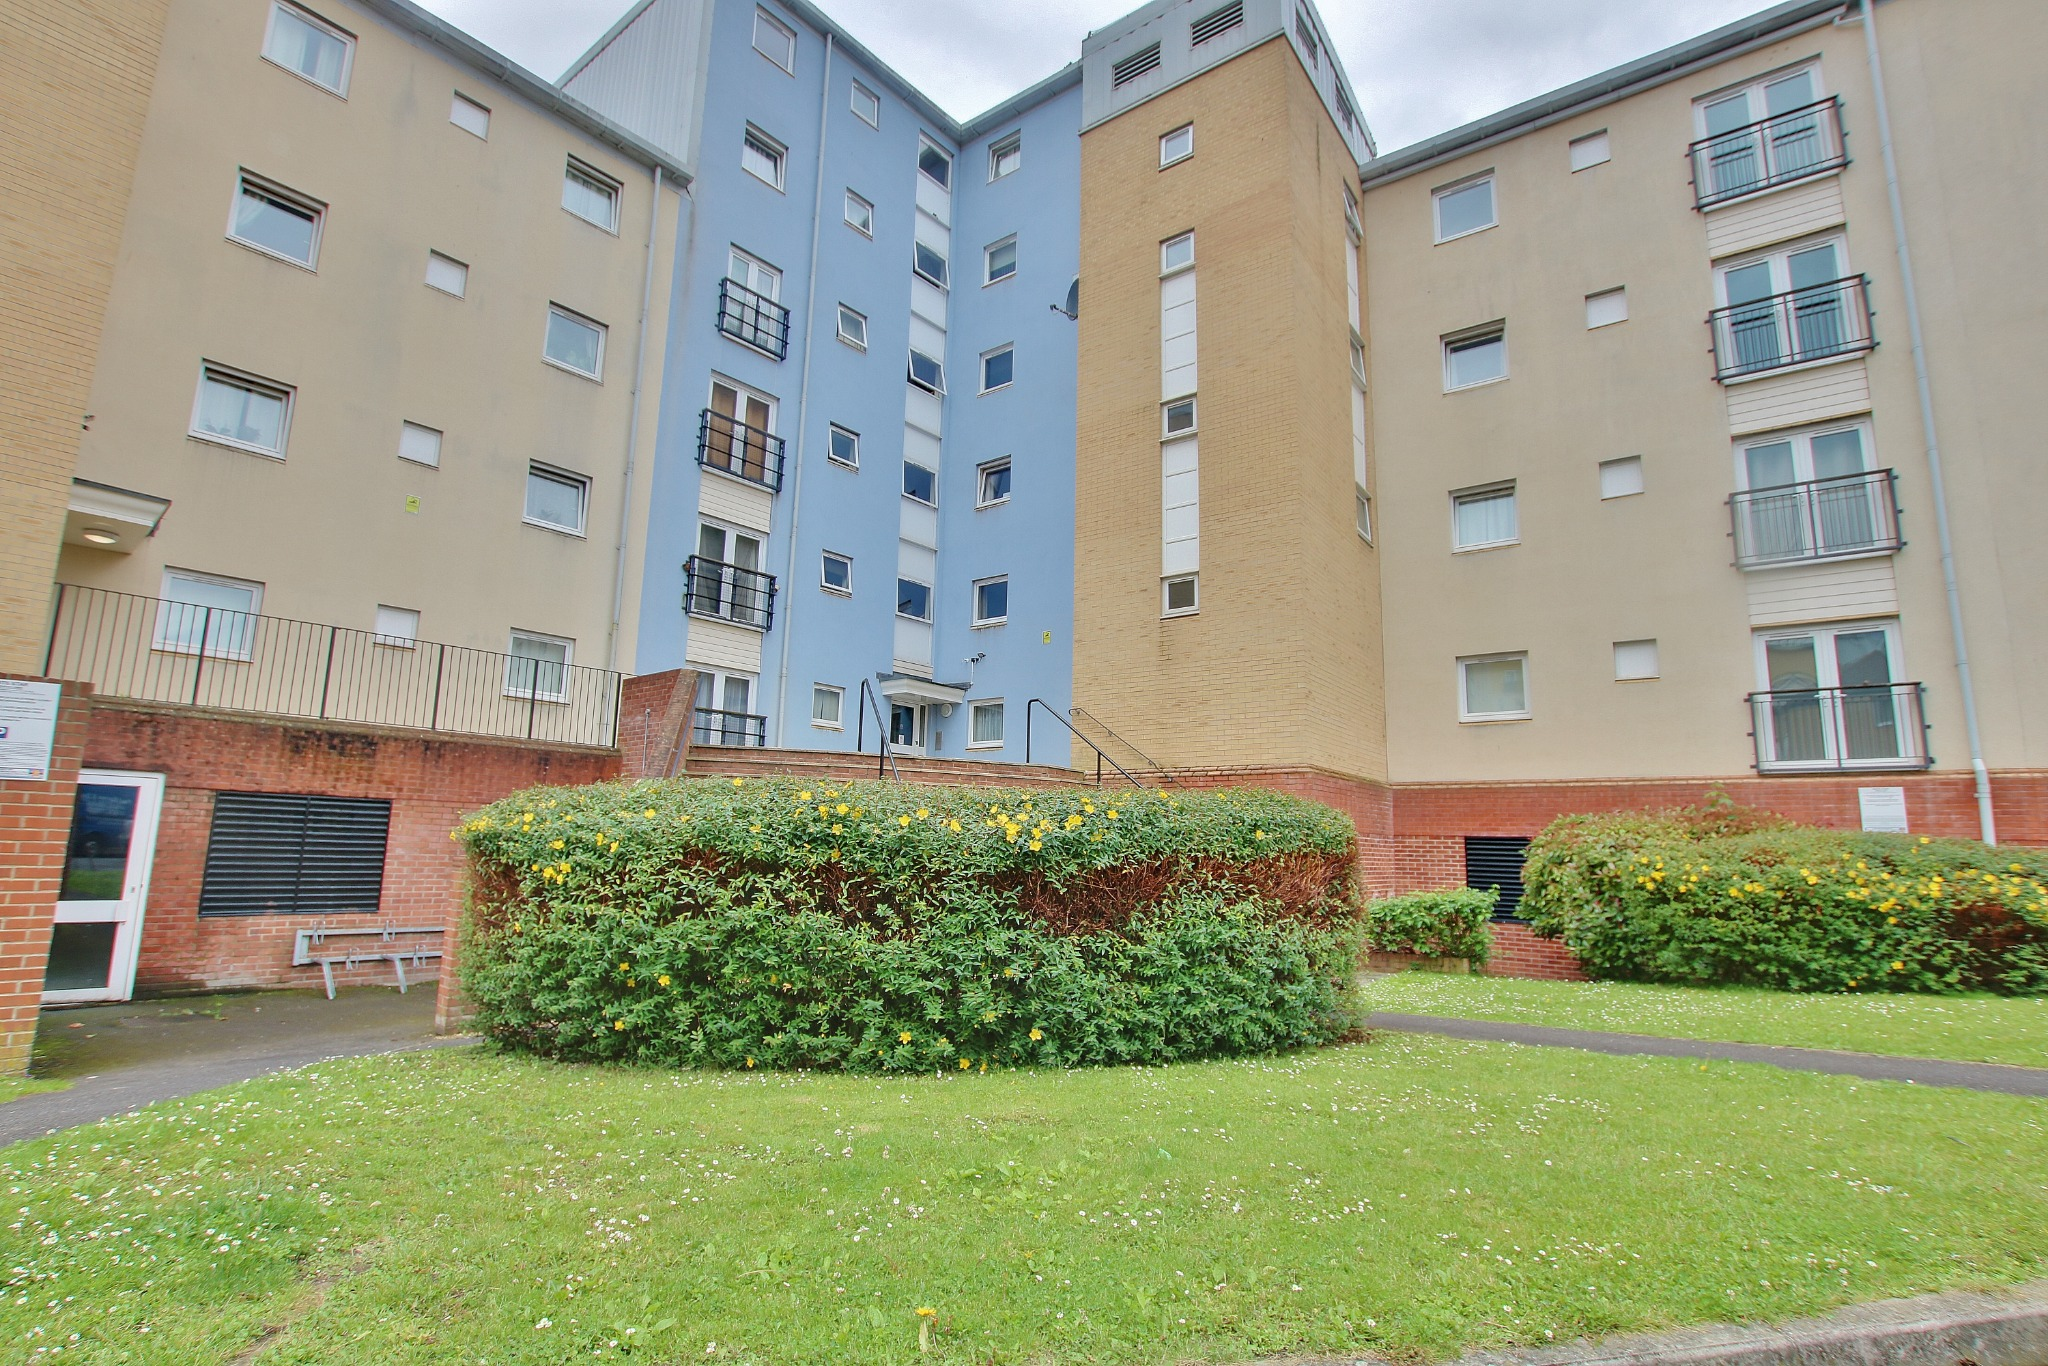 TWO BED APARTMENT IN CITY CENTRE WITH NO CHAIN